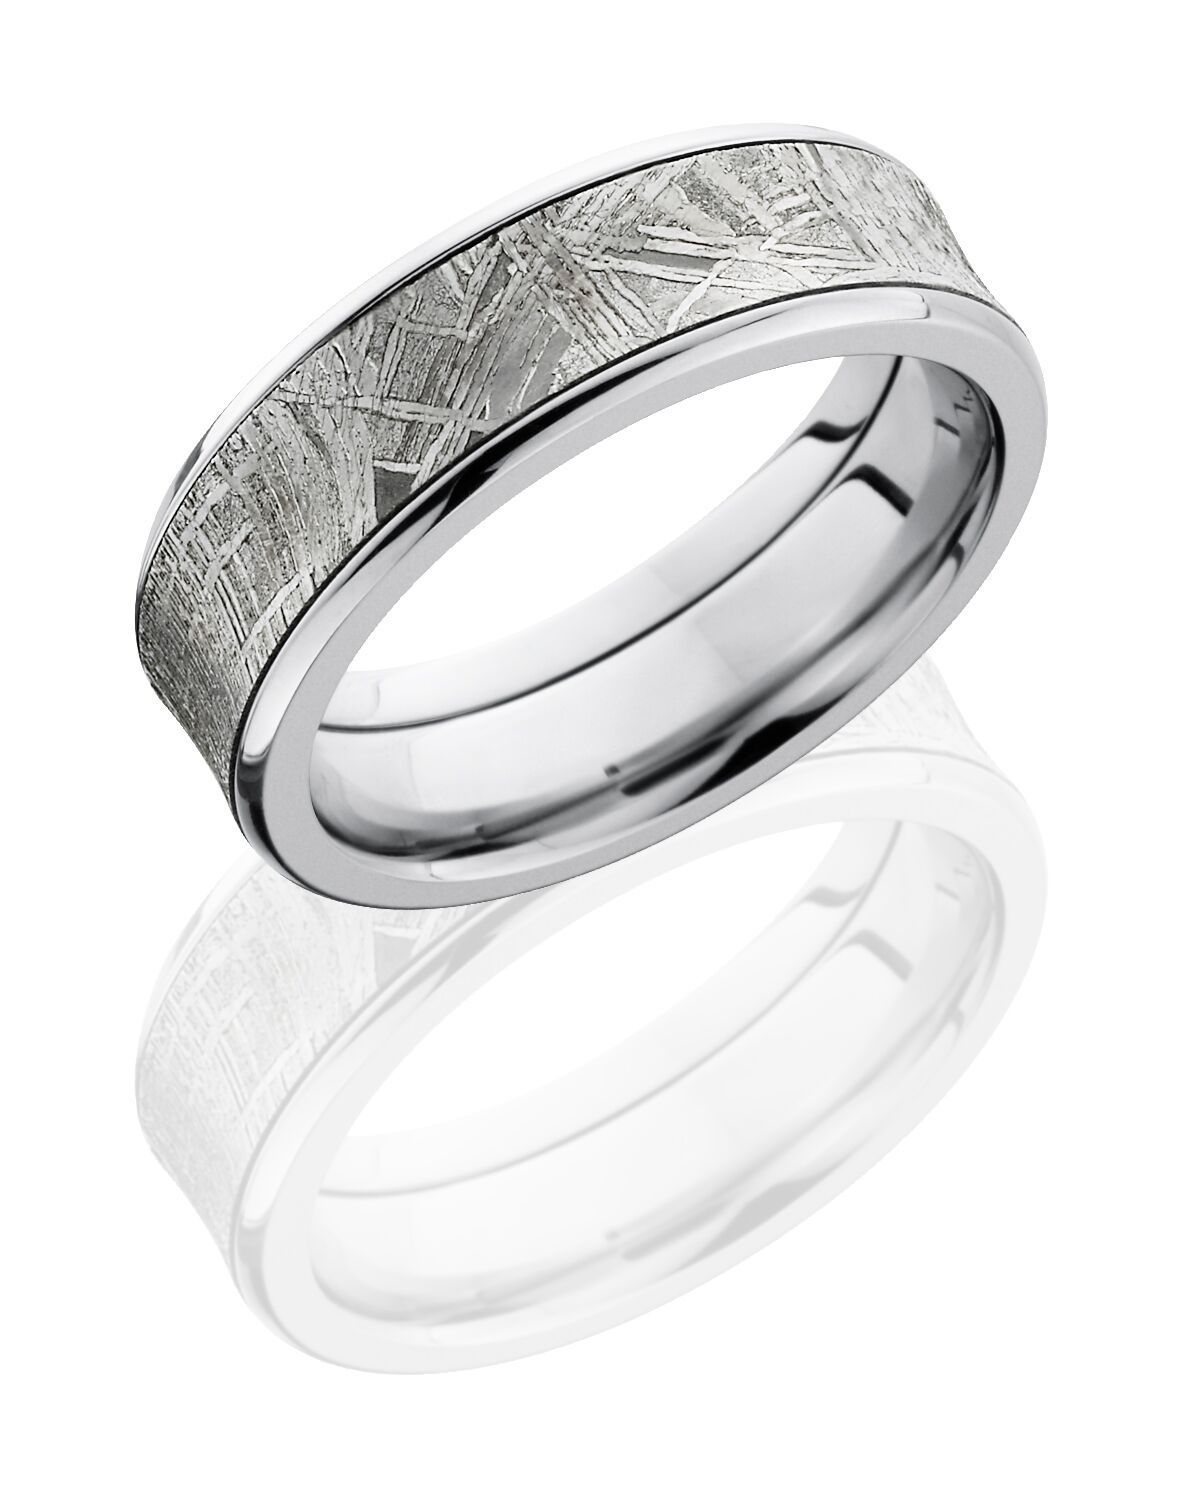 Cobalt Chrome wedding ring hand crafted 7mm Concave Band